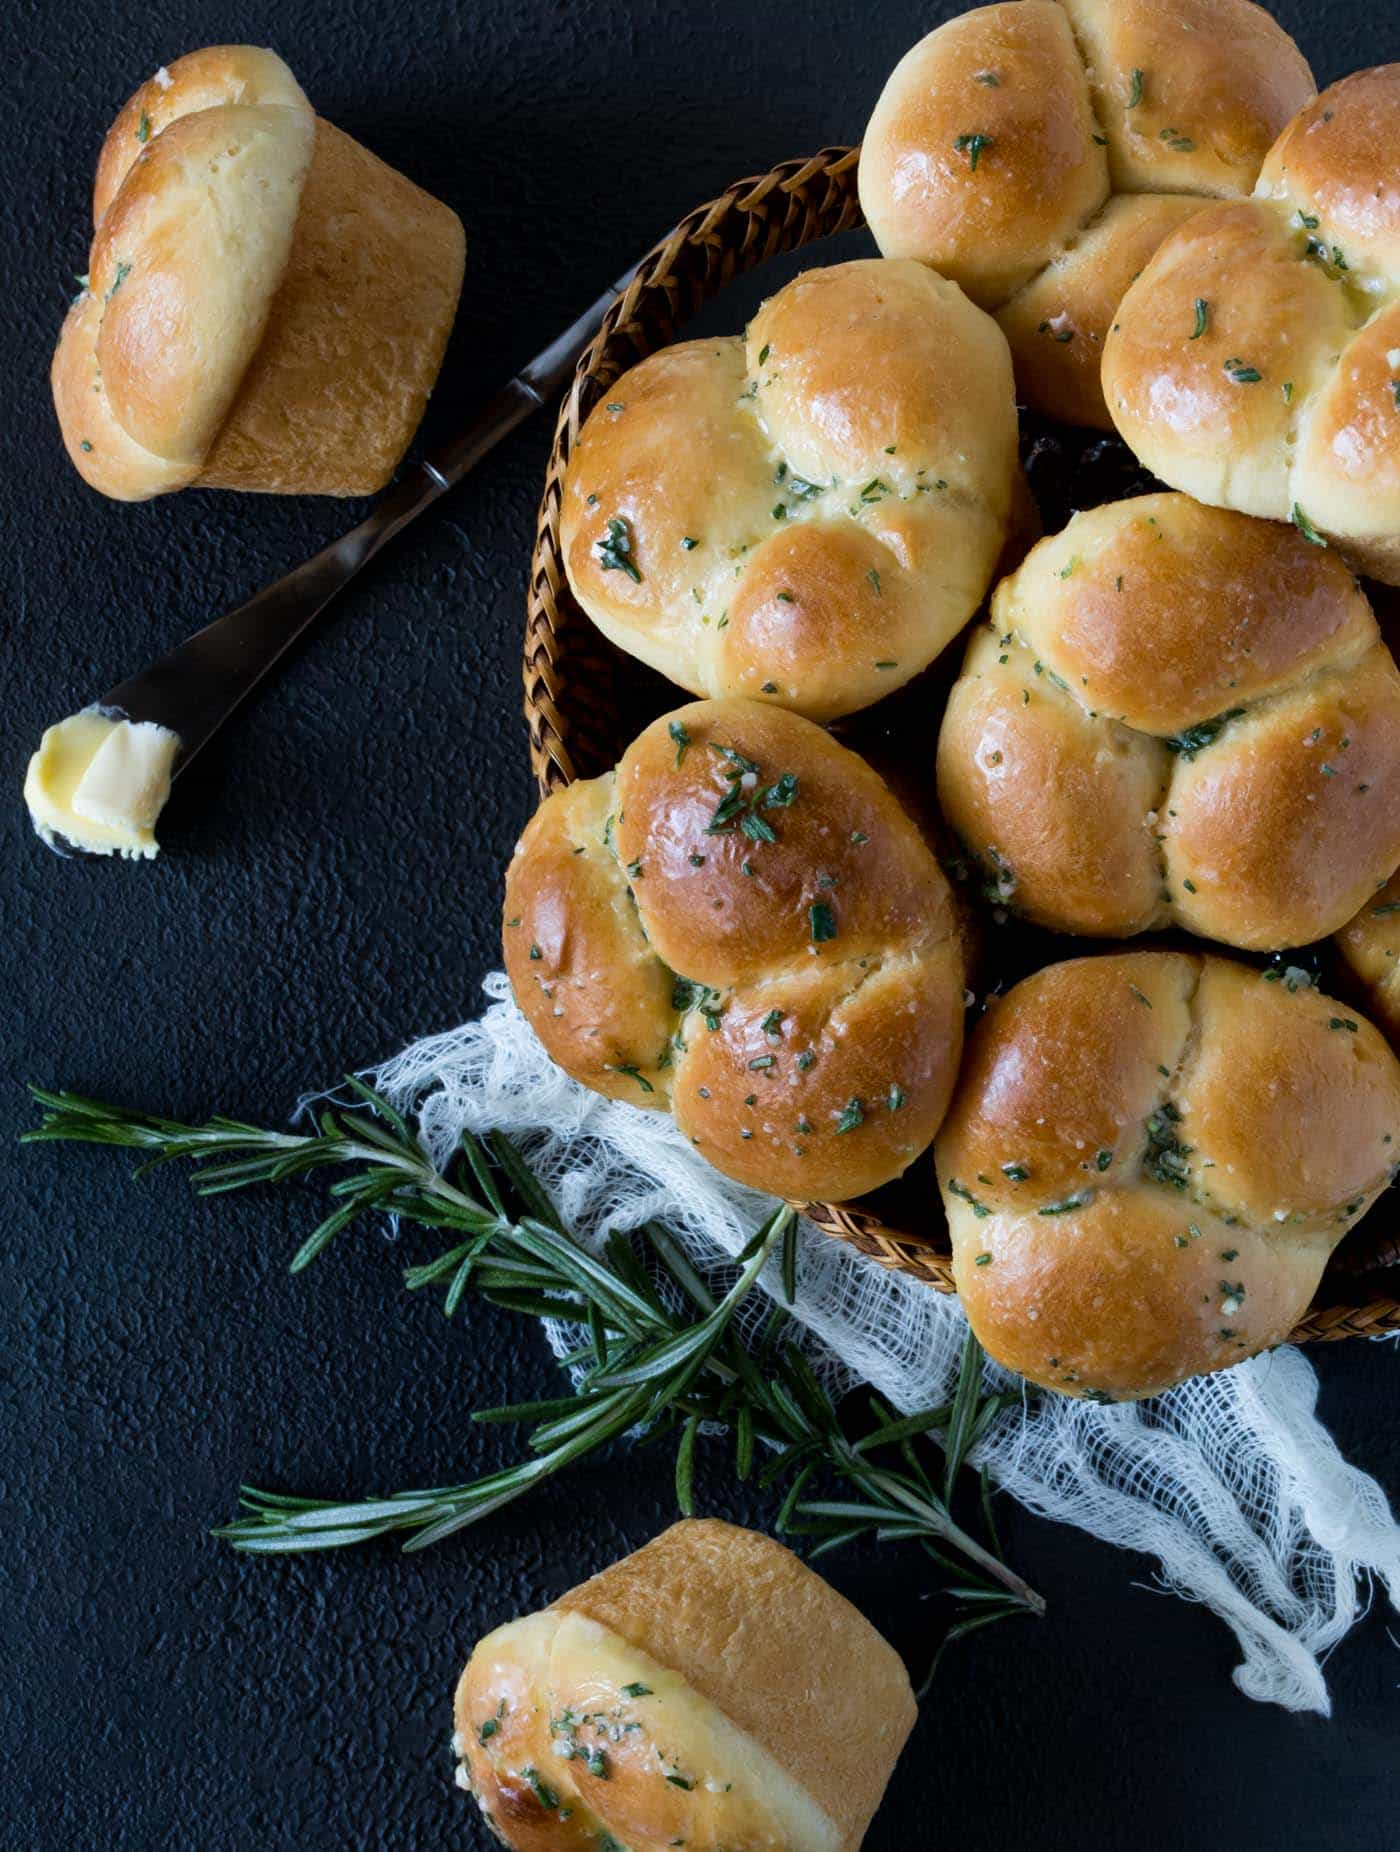 Top down view of a woven basket filled with homemade Rosemary Garlic Cloverleaf Rolls. Two rolls are next to the basket along with a butter knife with a pat of butter.